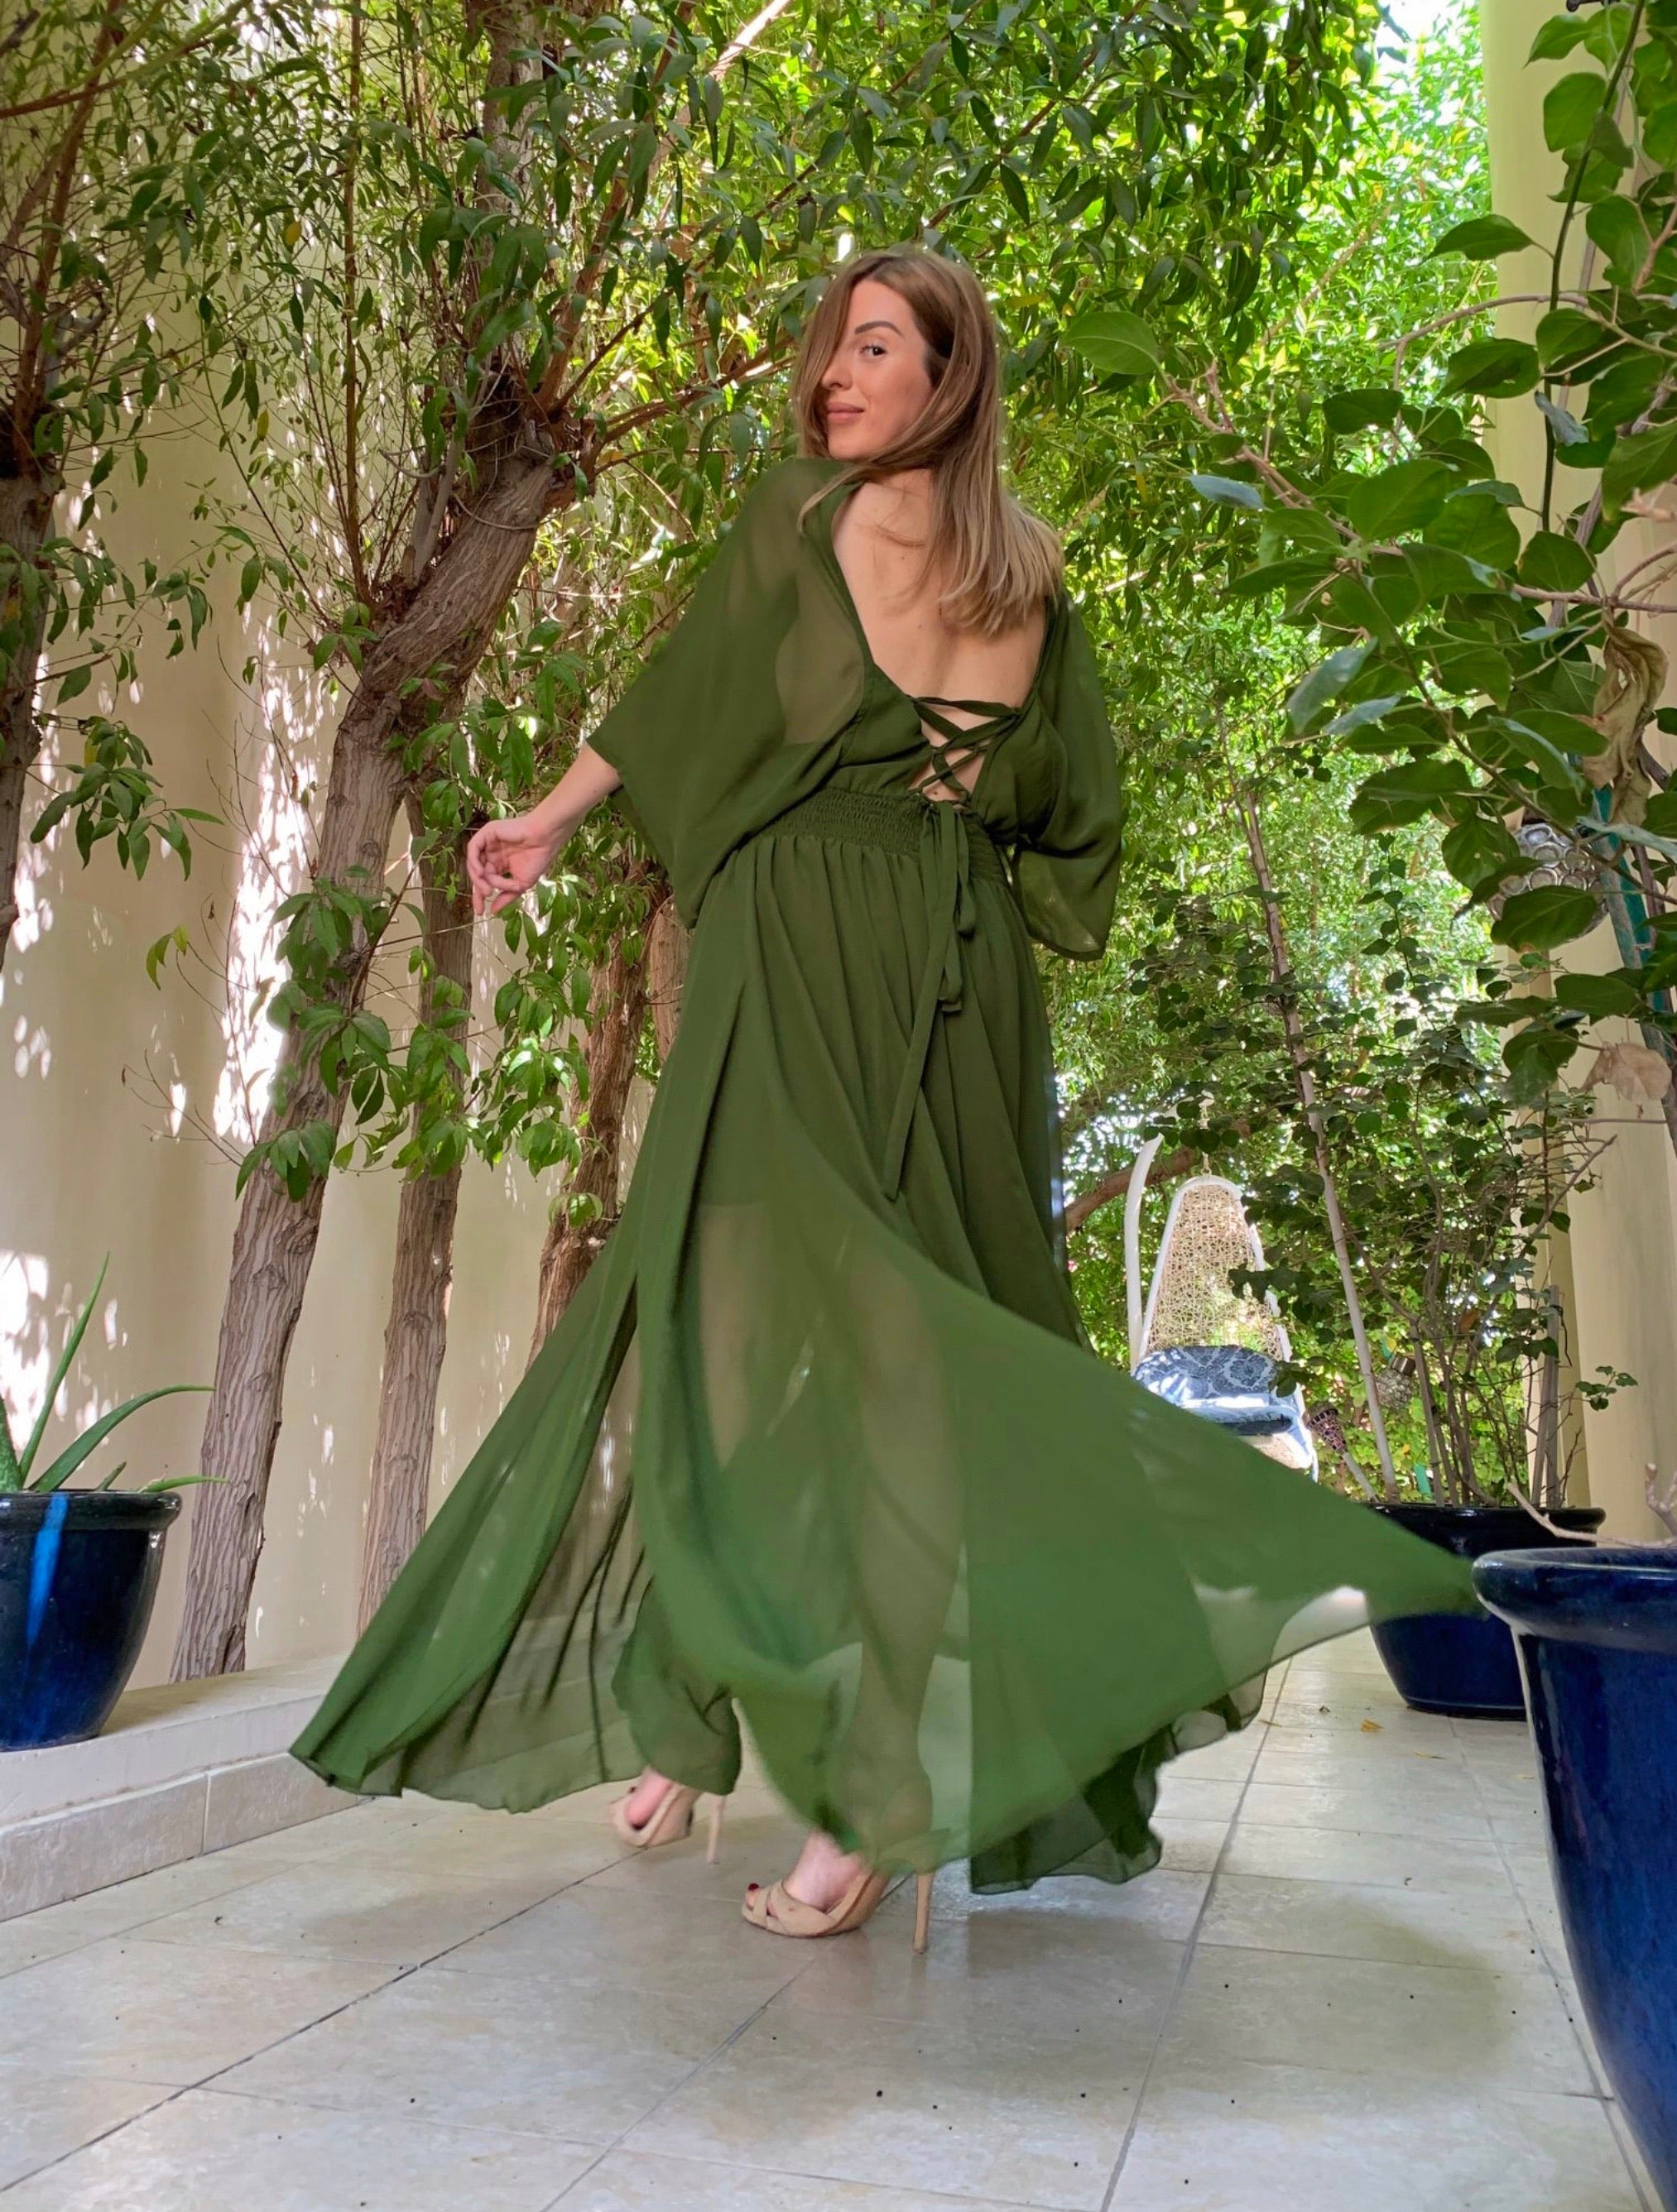 The Goddess Dress in Mother Earth